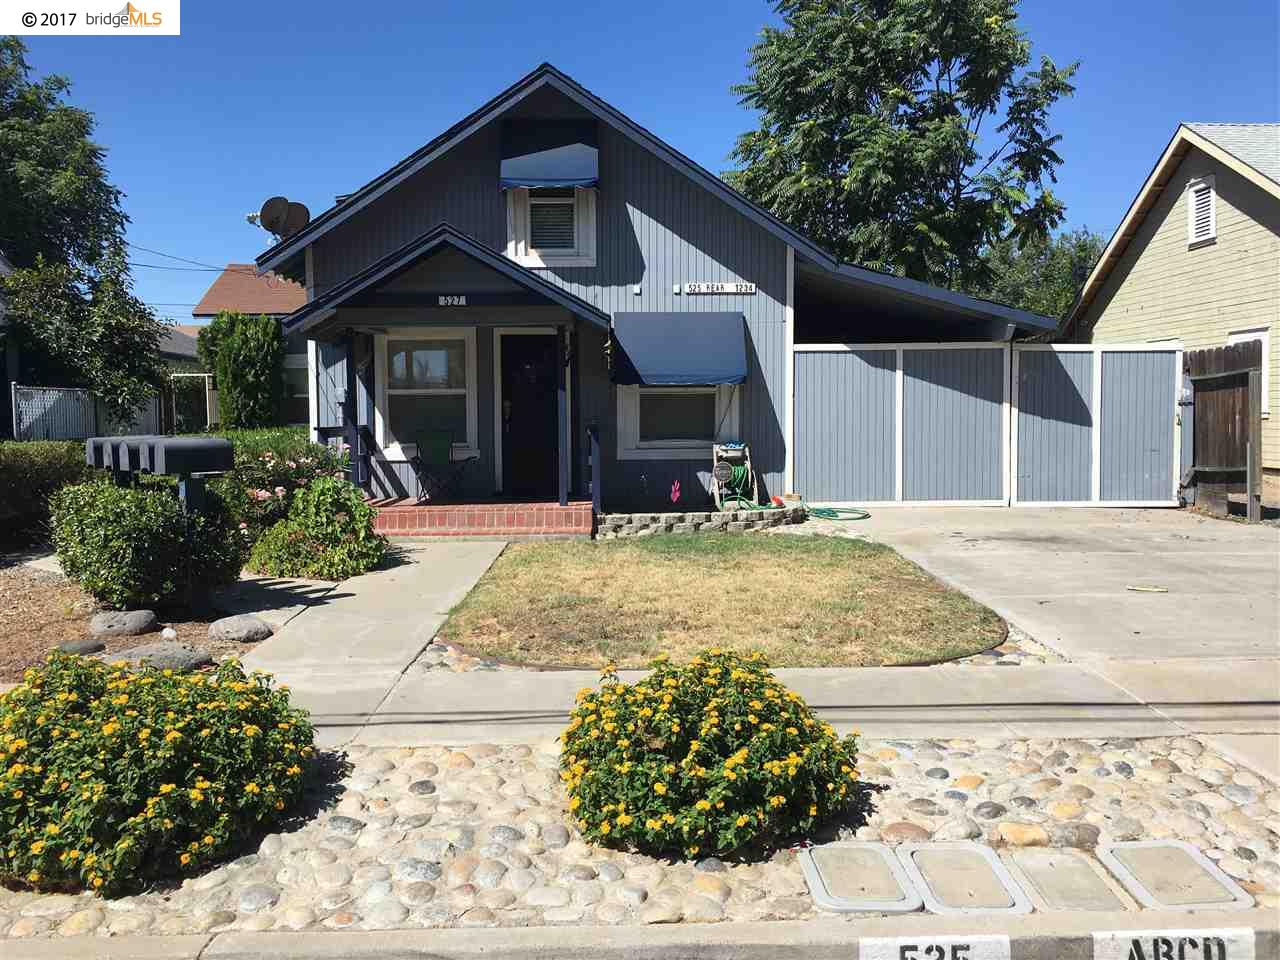 233 cesa avenue brentwood ca 94513 sold listing mls for Brentwood builders